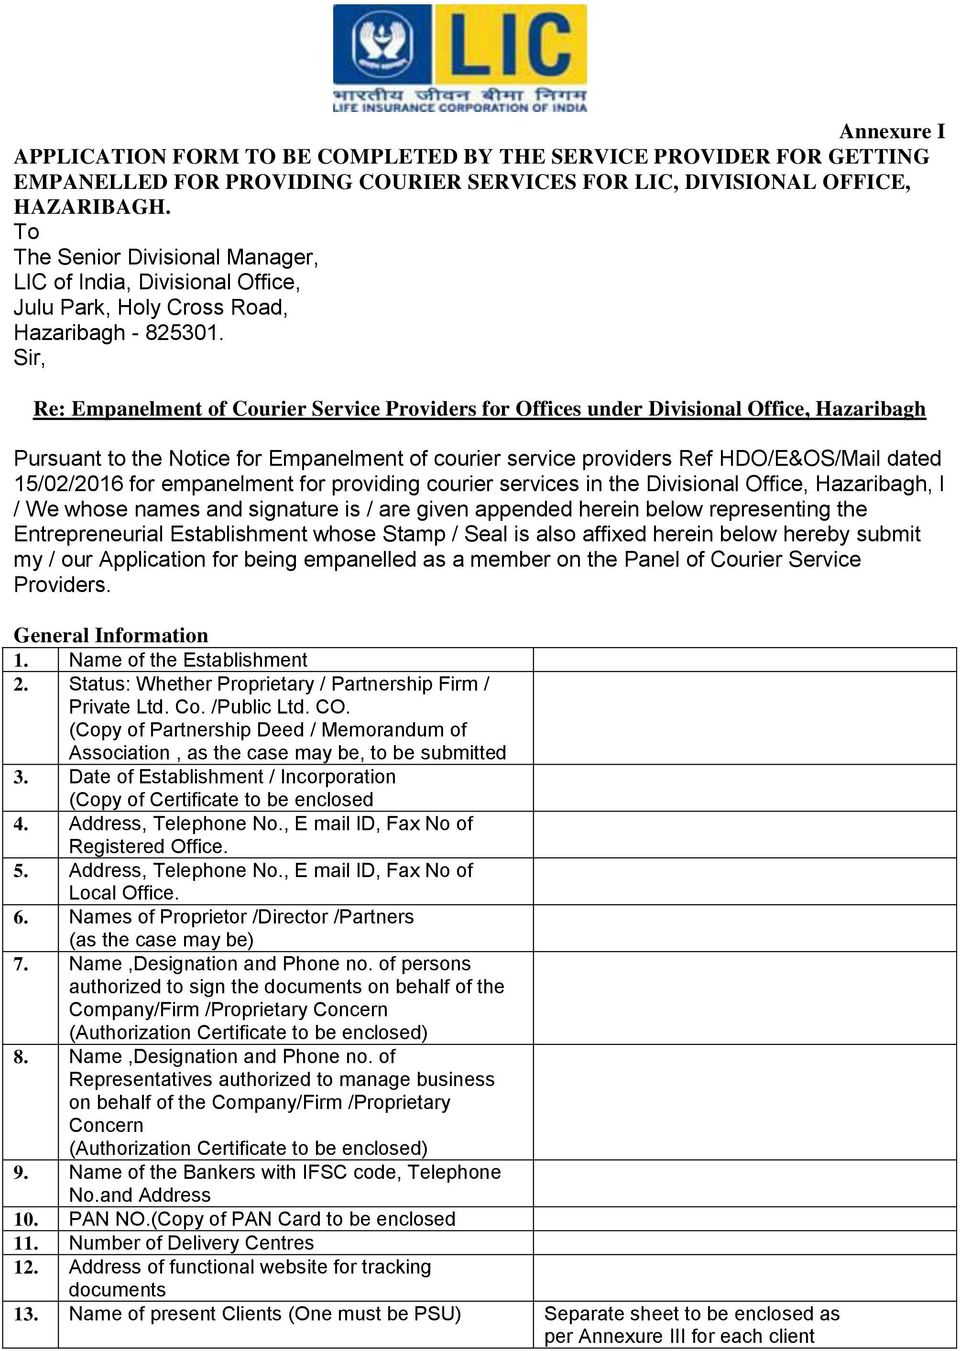 Sir, Re: Empanelment of Courier Service Providers for Offices under Divisional Office, Hazaribagh Pursuant to the Notice for Empanelment of courier service providers Ref HDO/E&OS/Mail dated